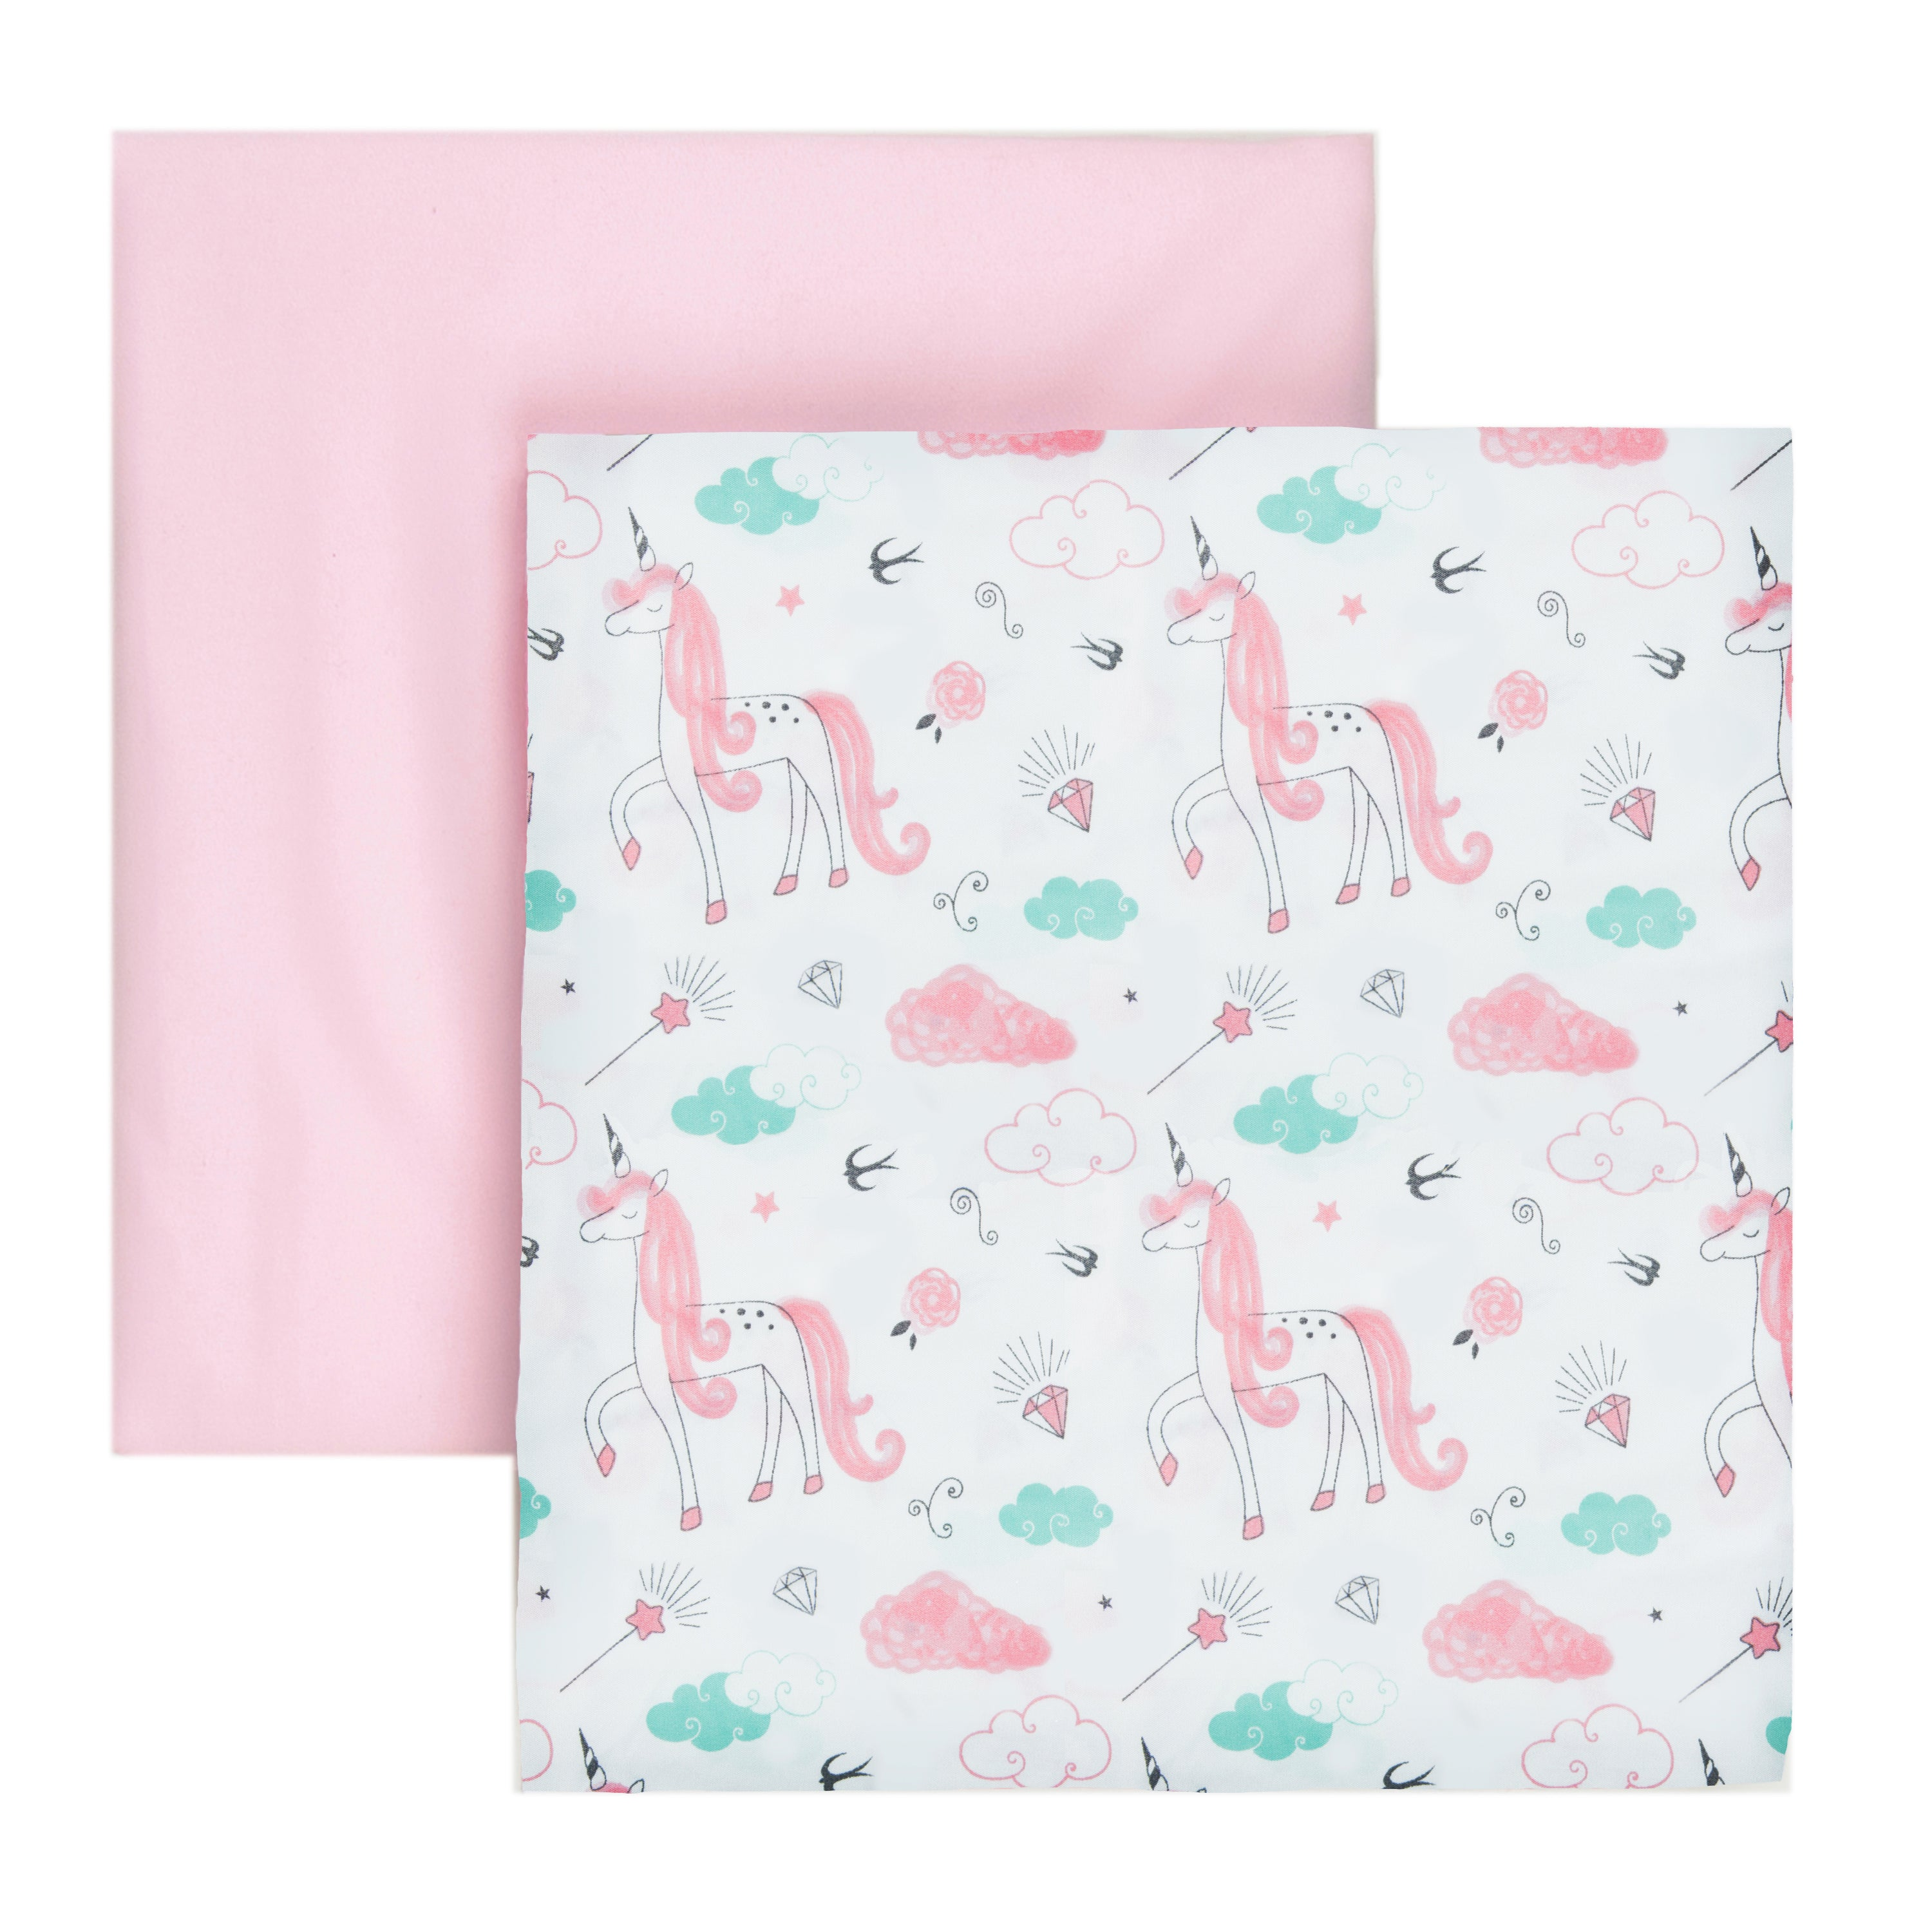 Animals Print BABY COT VALANCE SHEET WITH FRILLS ALL ROUND //TO FIT COT//COT BED